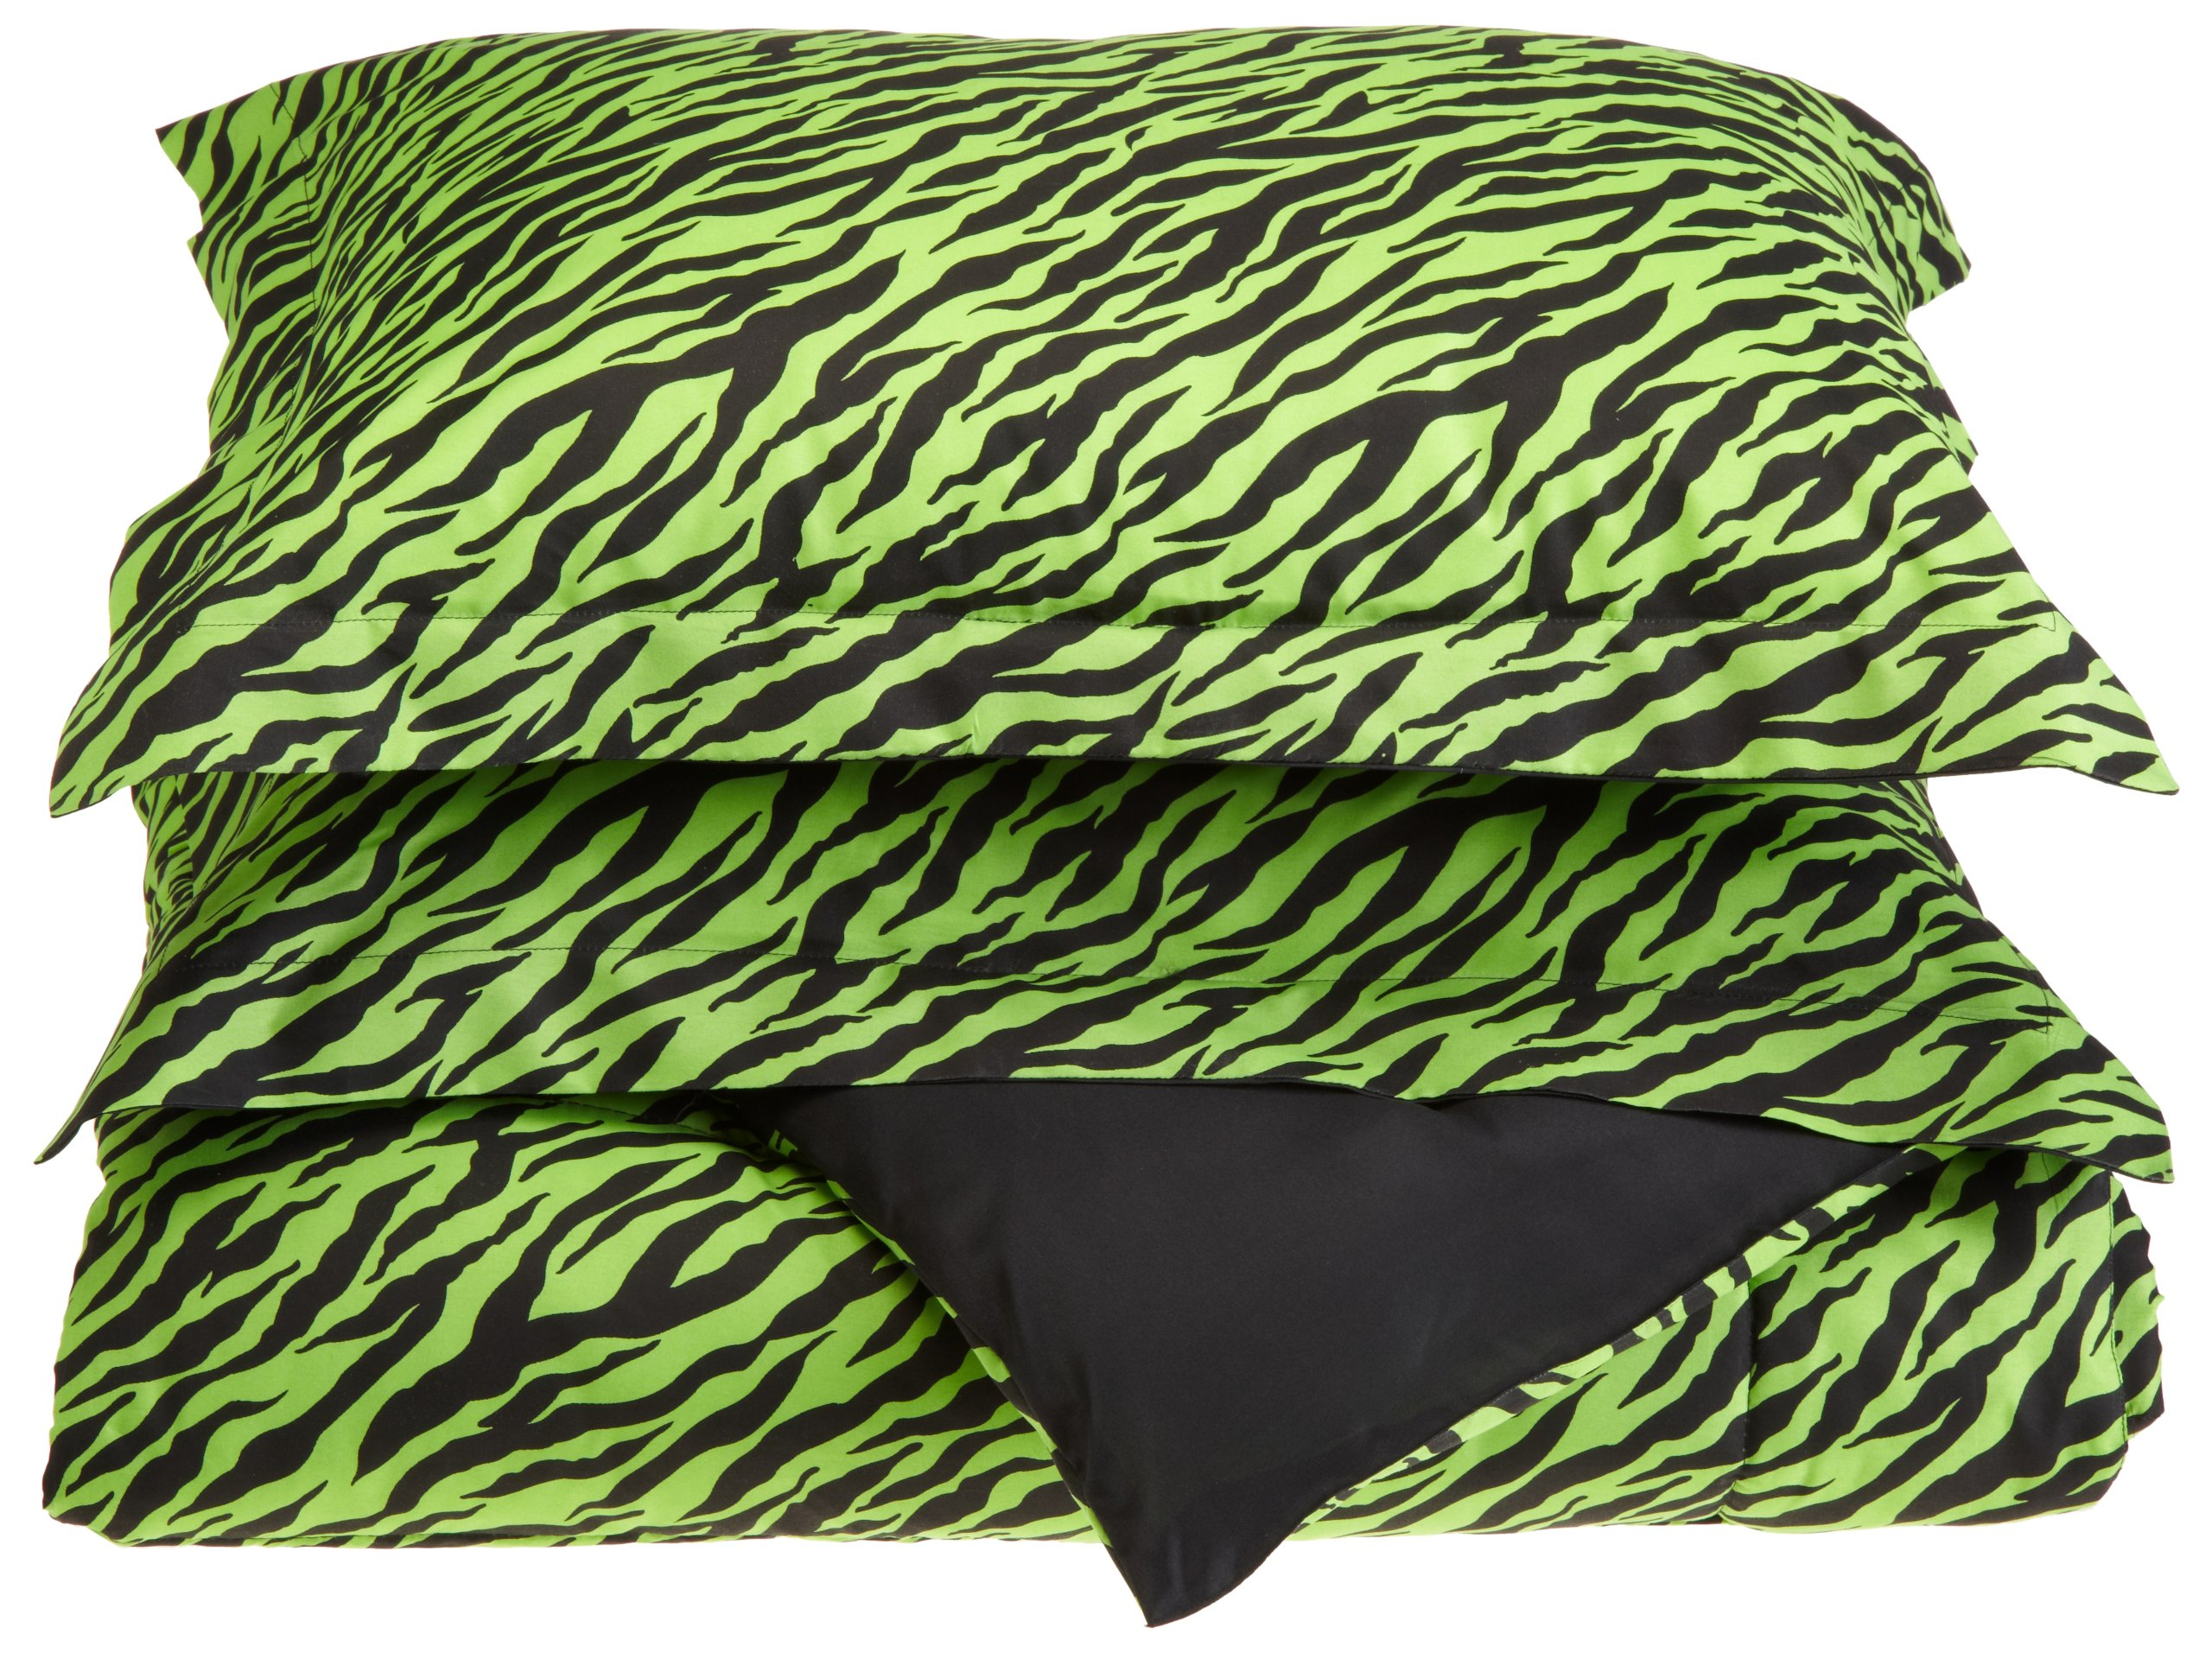 Lime Green Bedding Sets and Bedroom Decor Lime green